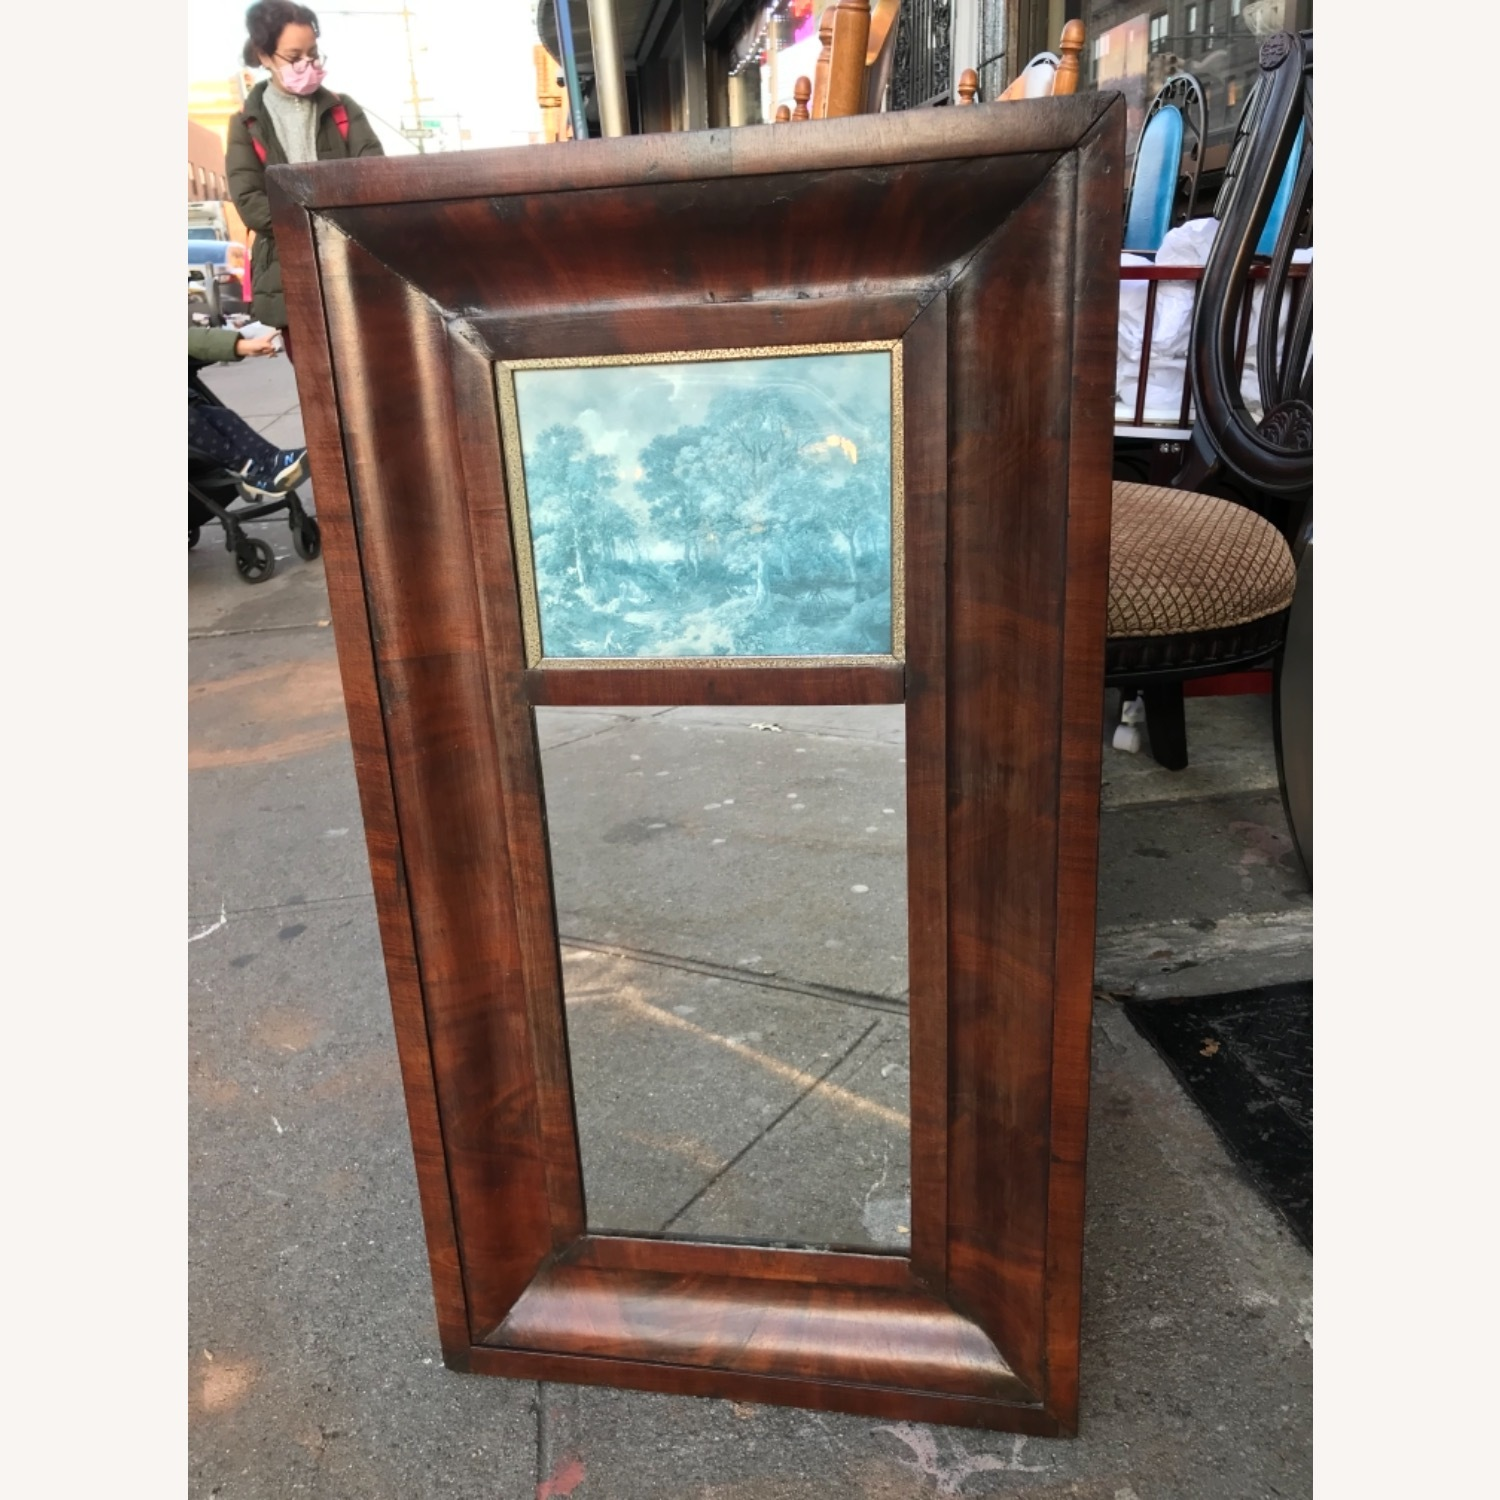 Antique 1900s Mahogany Framed Mirror w/ Picture - image-16